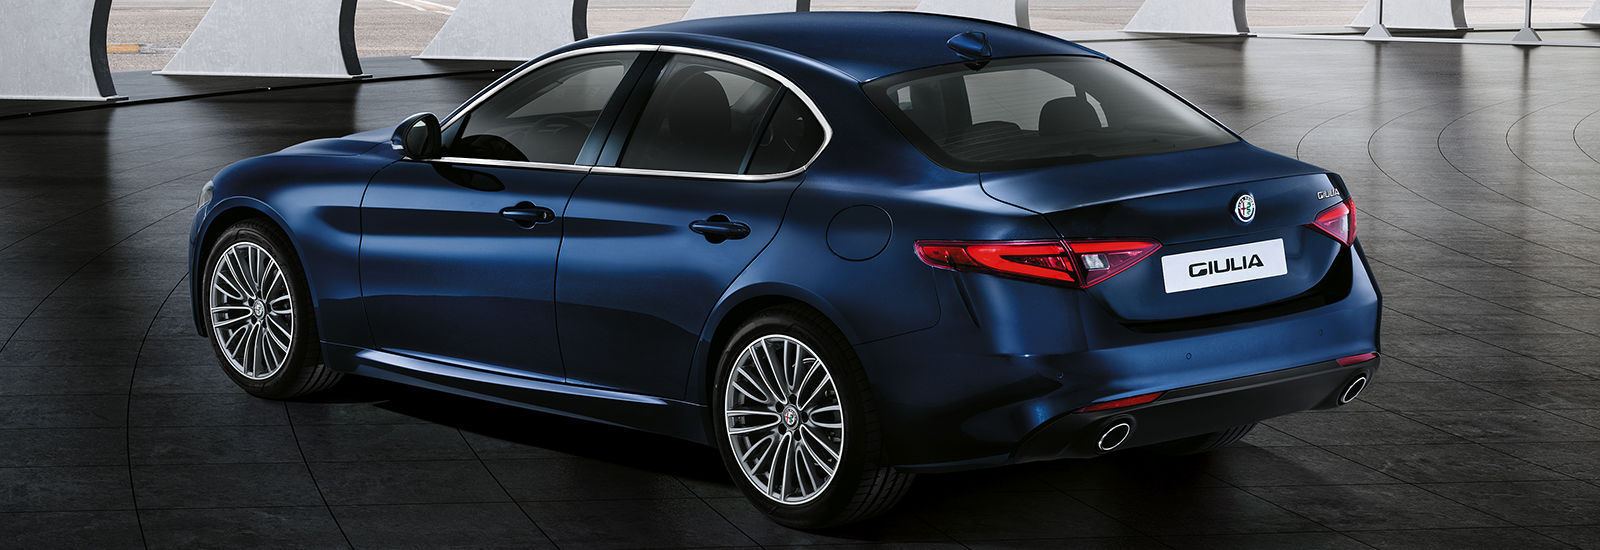 2017 alfa romeo giulia coupe price specs and release date carwow. Black Bedroom Furniture Sets. Home Design Ideas